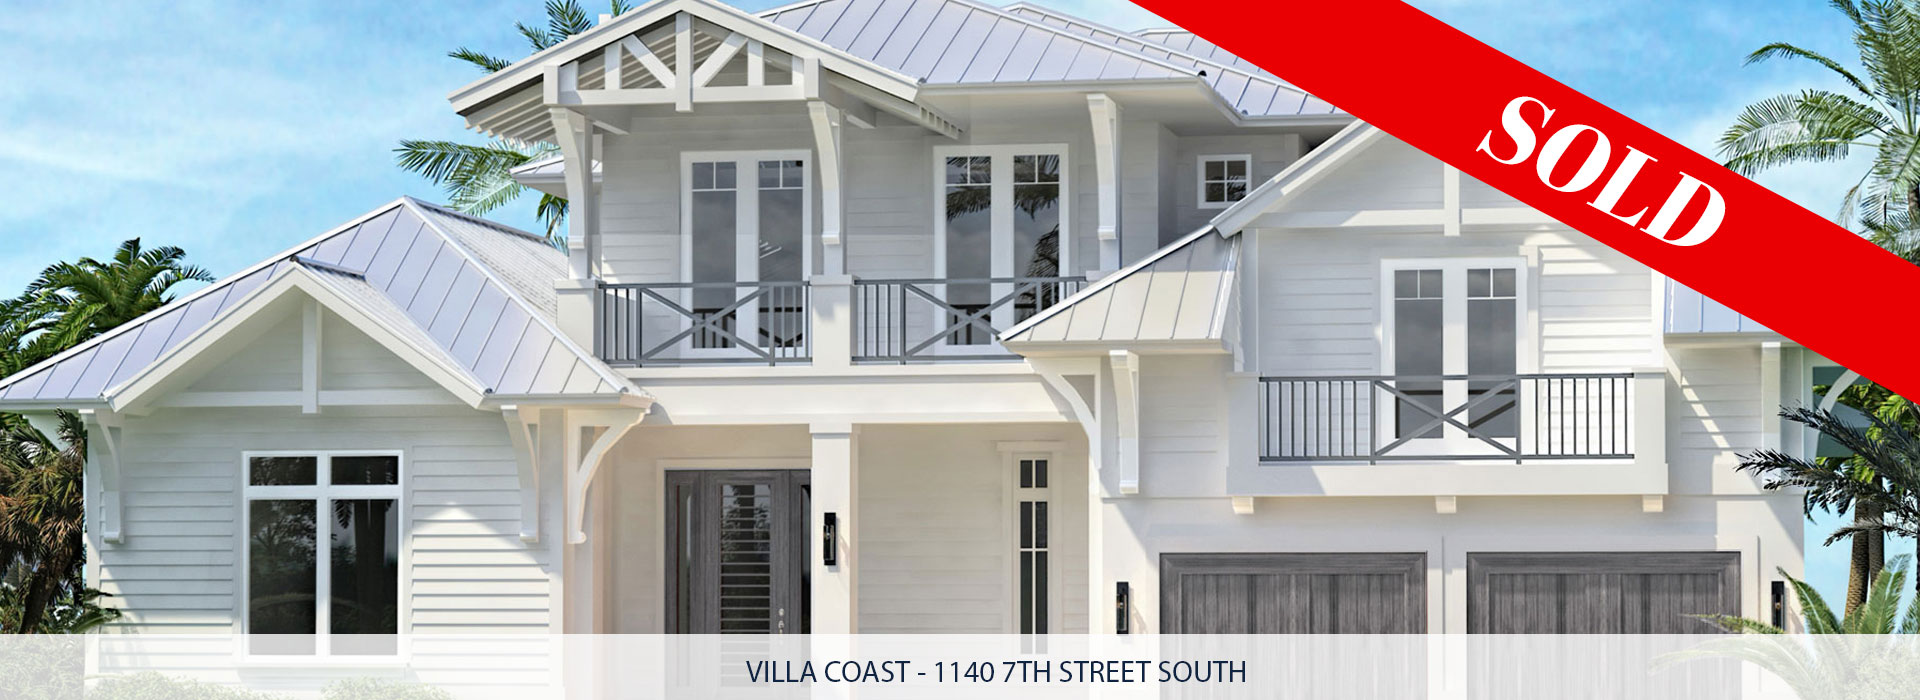 1140 7th Street South Naples, Florida Sold | Griffin Builders